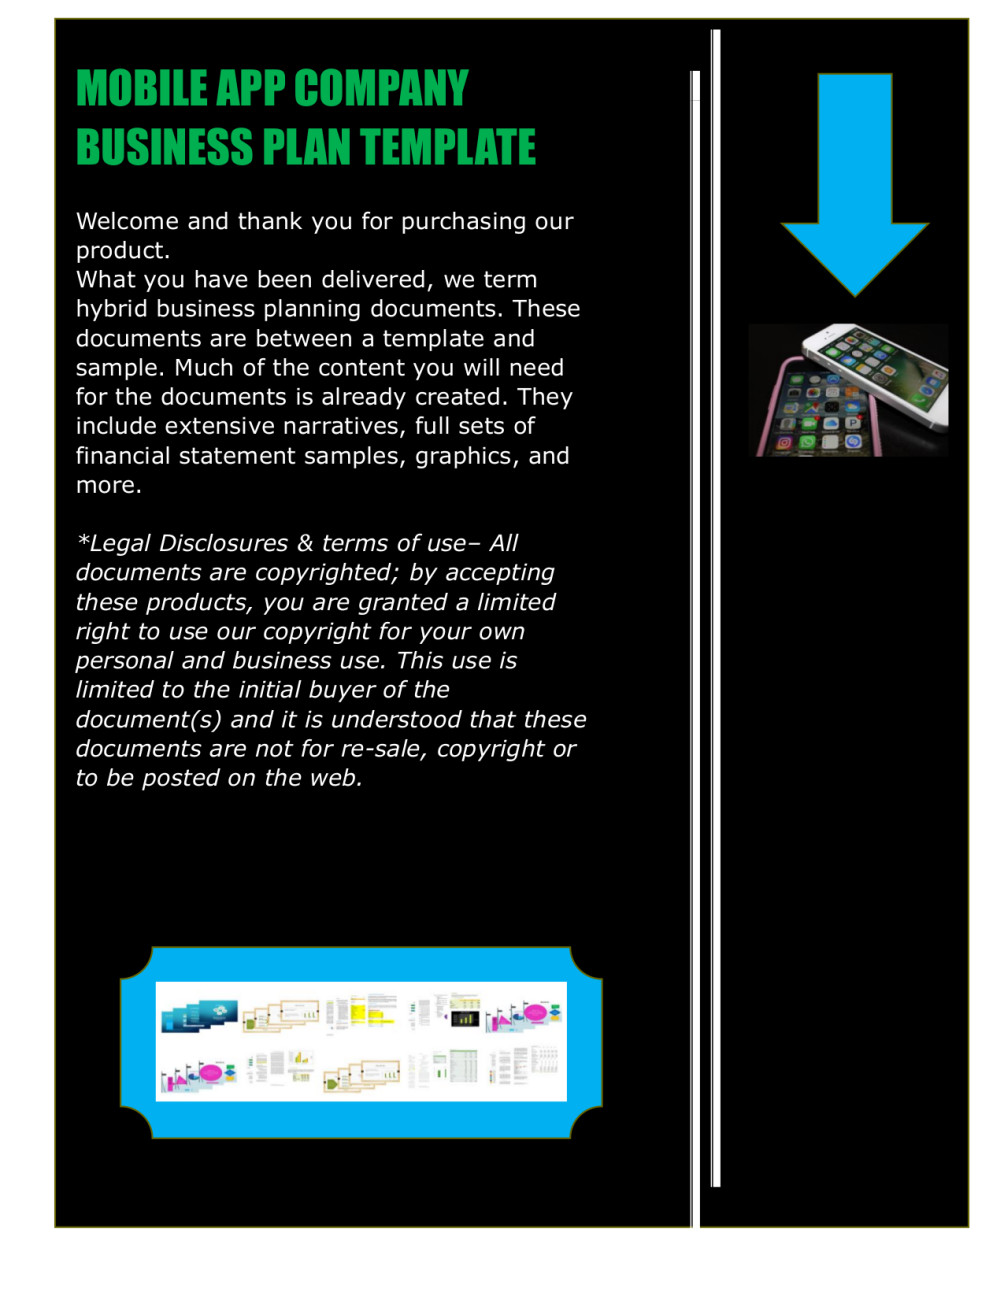 Mobile App Business Plan Template Fiverr - Business plan template app